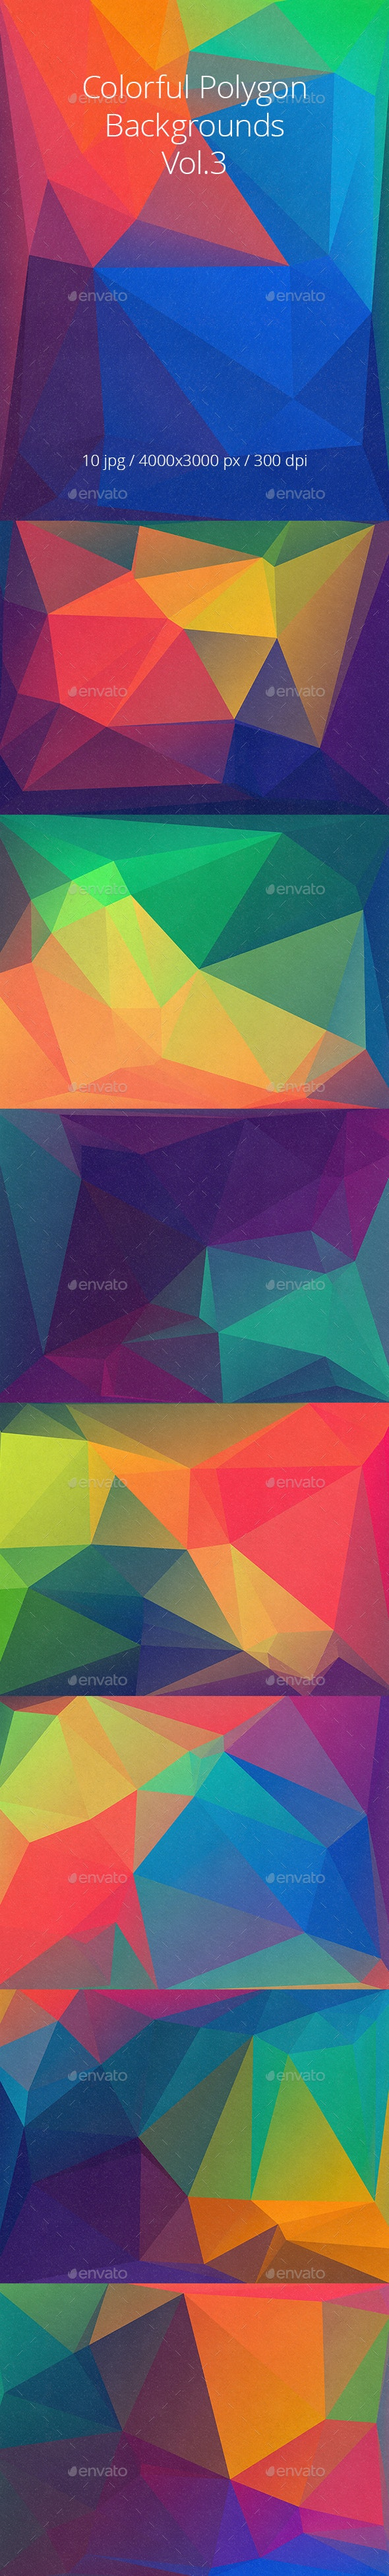 Colorful Polygon Backgrounds Vol.3 - Abstract Backgrounds